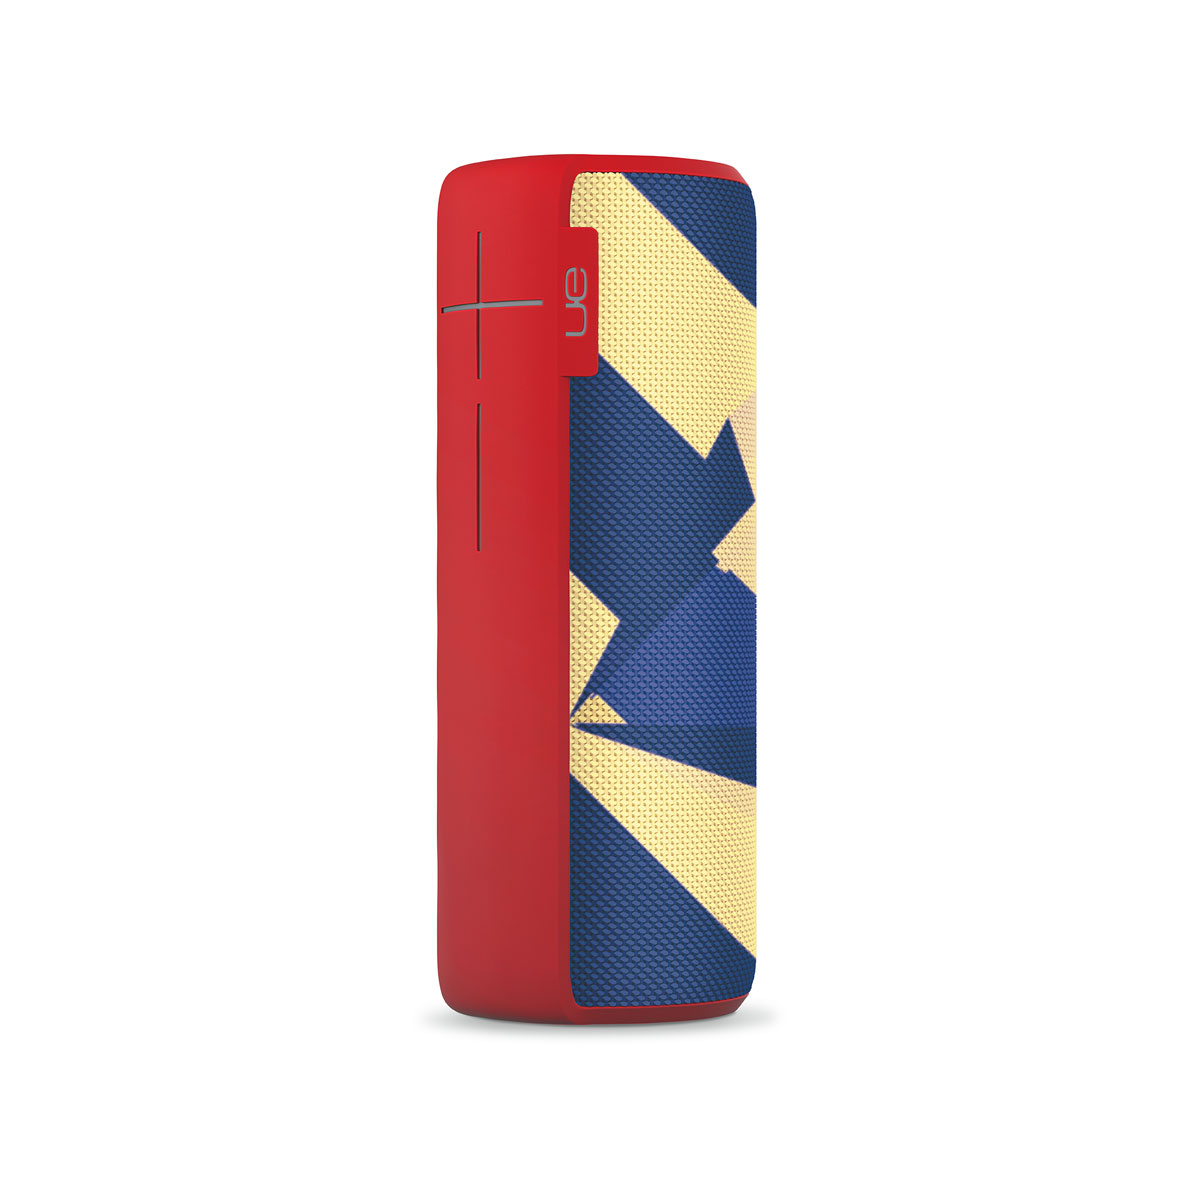 Ue megaboom red bull shockwave 2 prime snowboarding for Housse ue megaboom